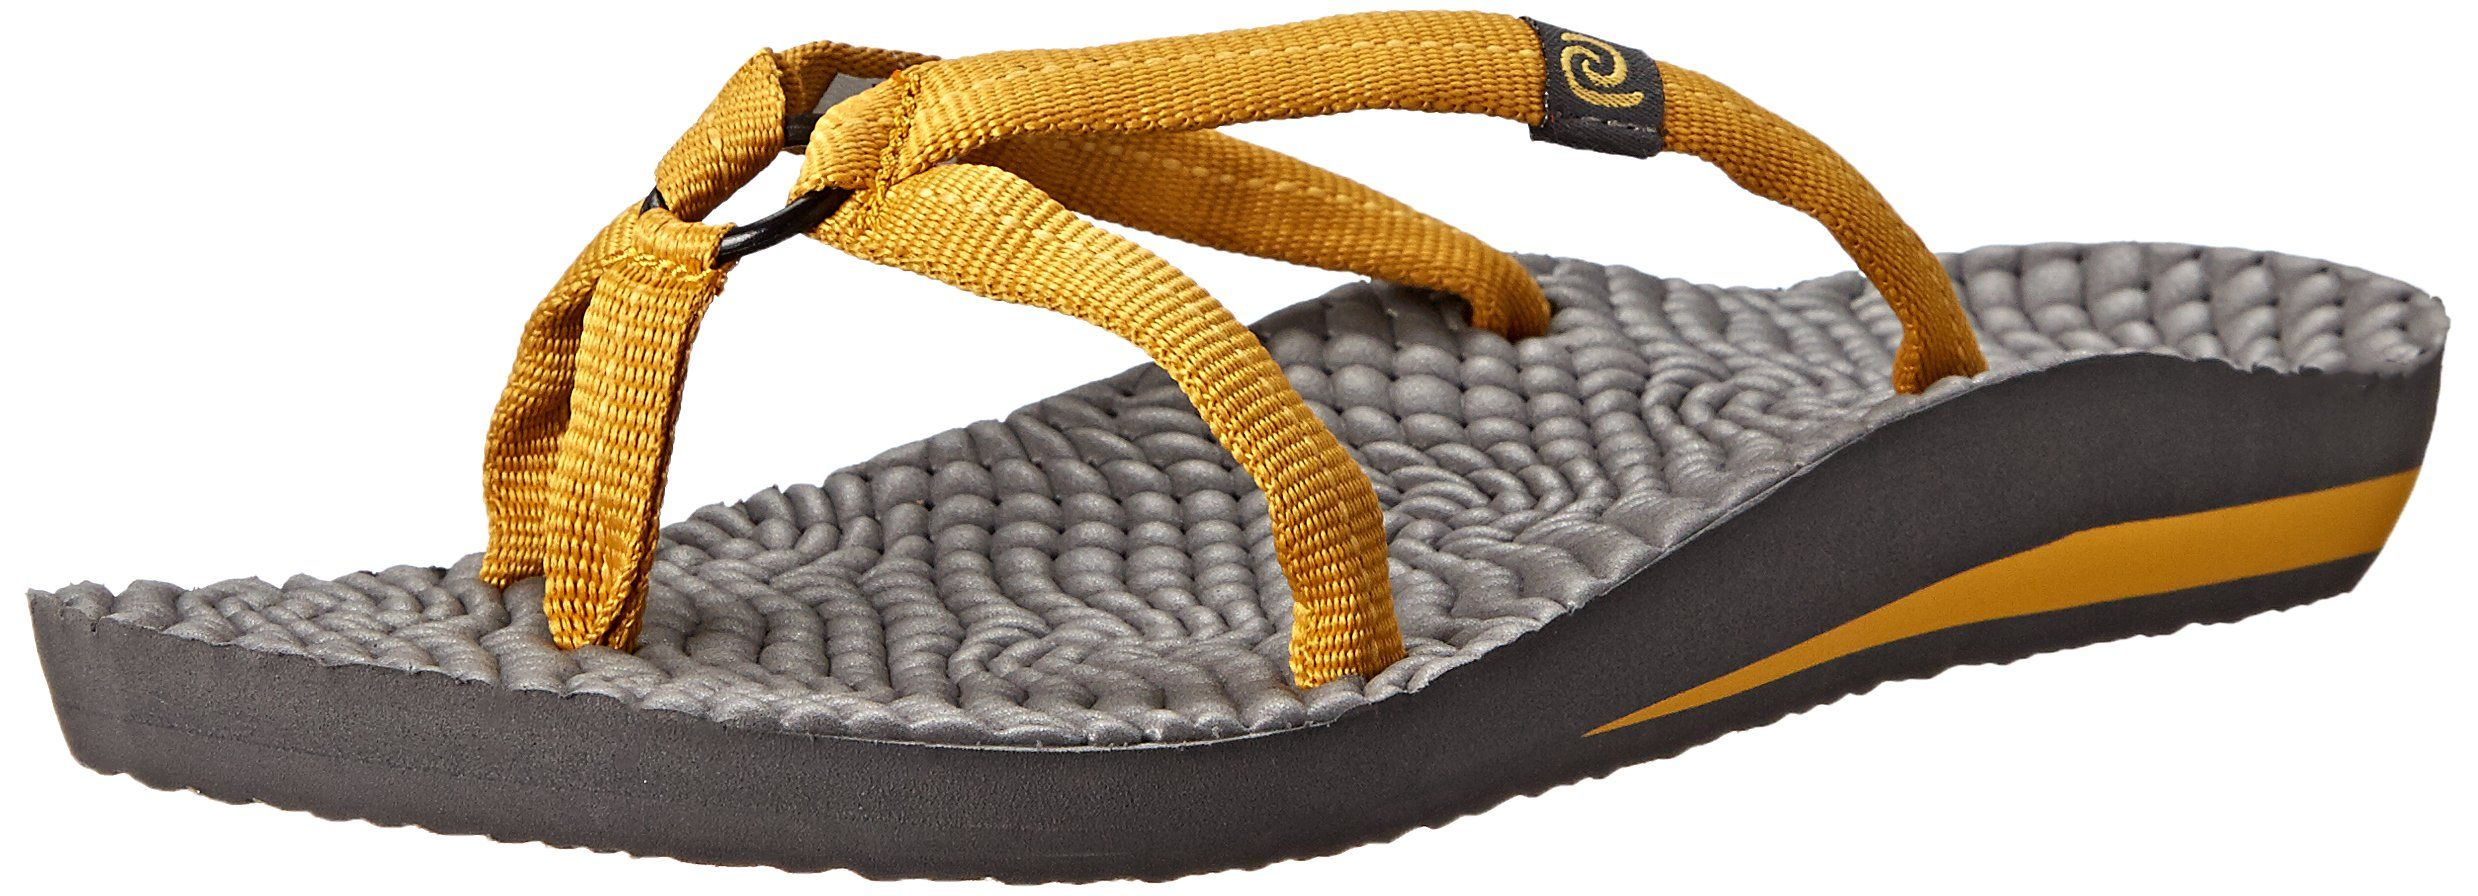 ae9e889ec97 Rafters Womens Antigua Ring Flip Flop